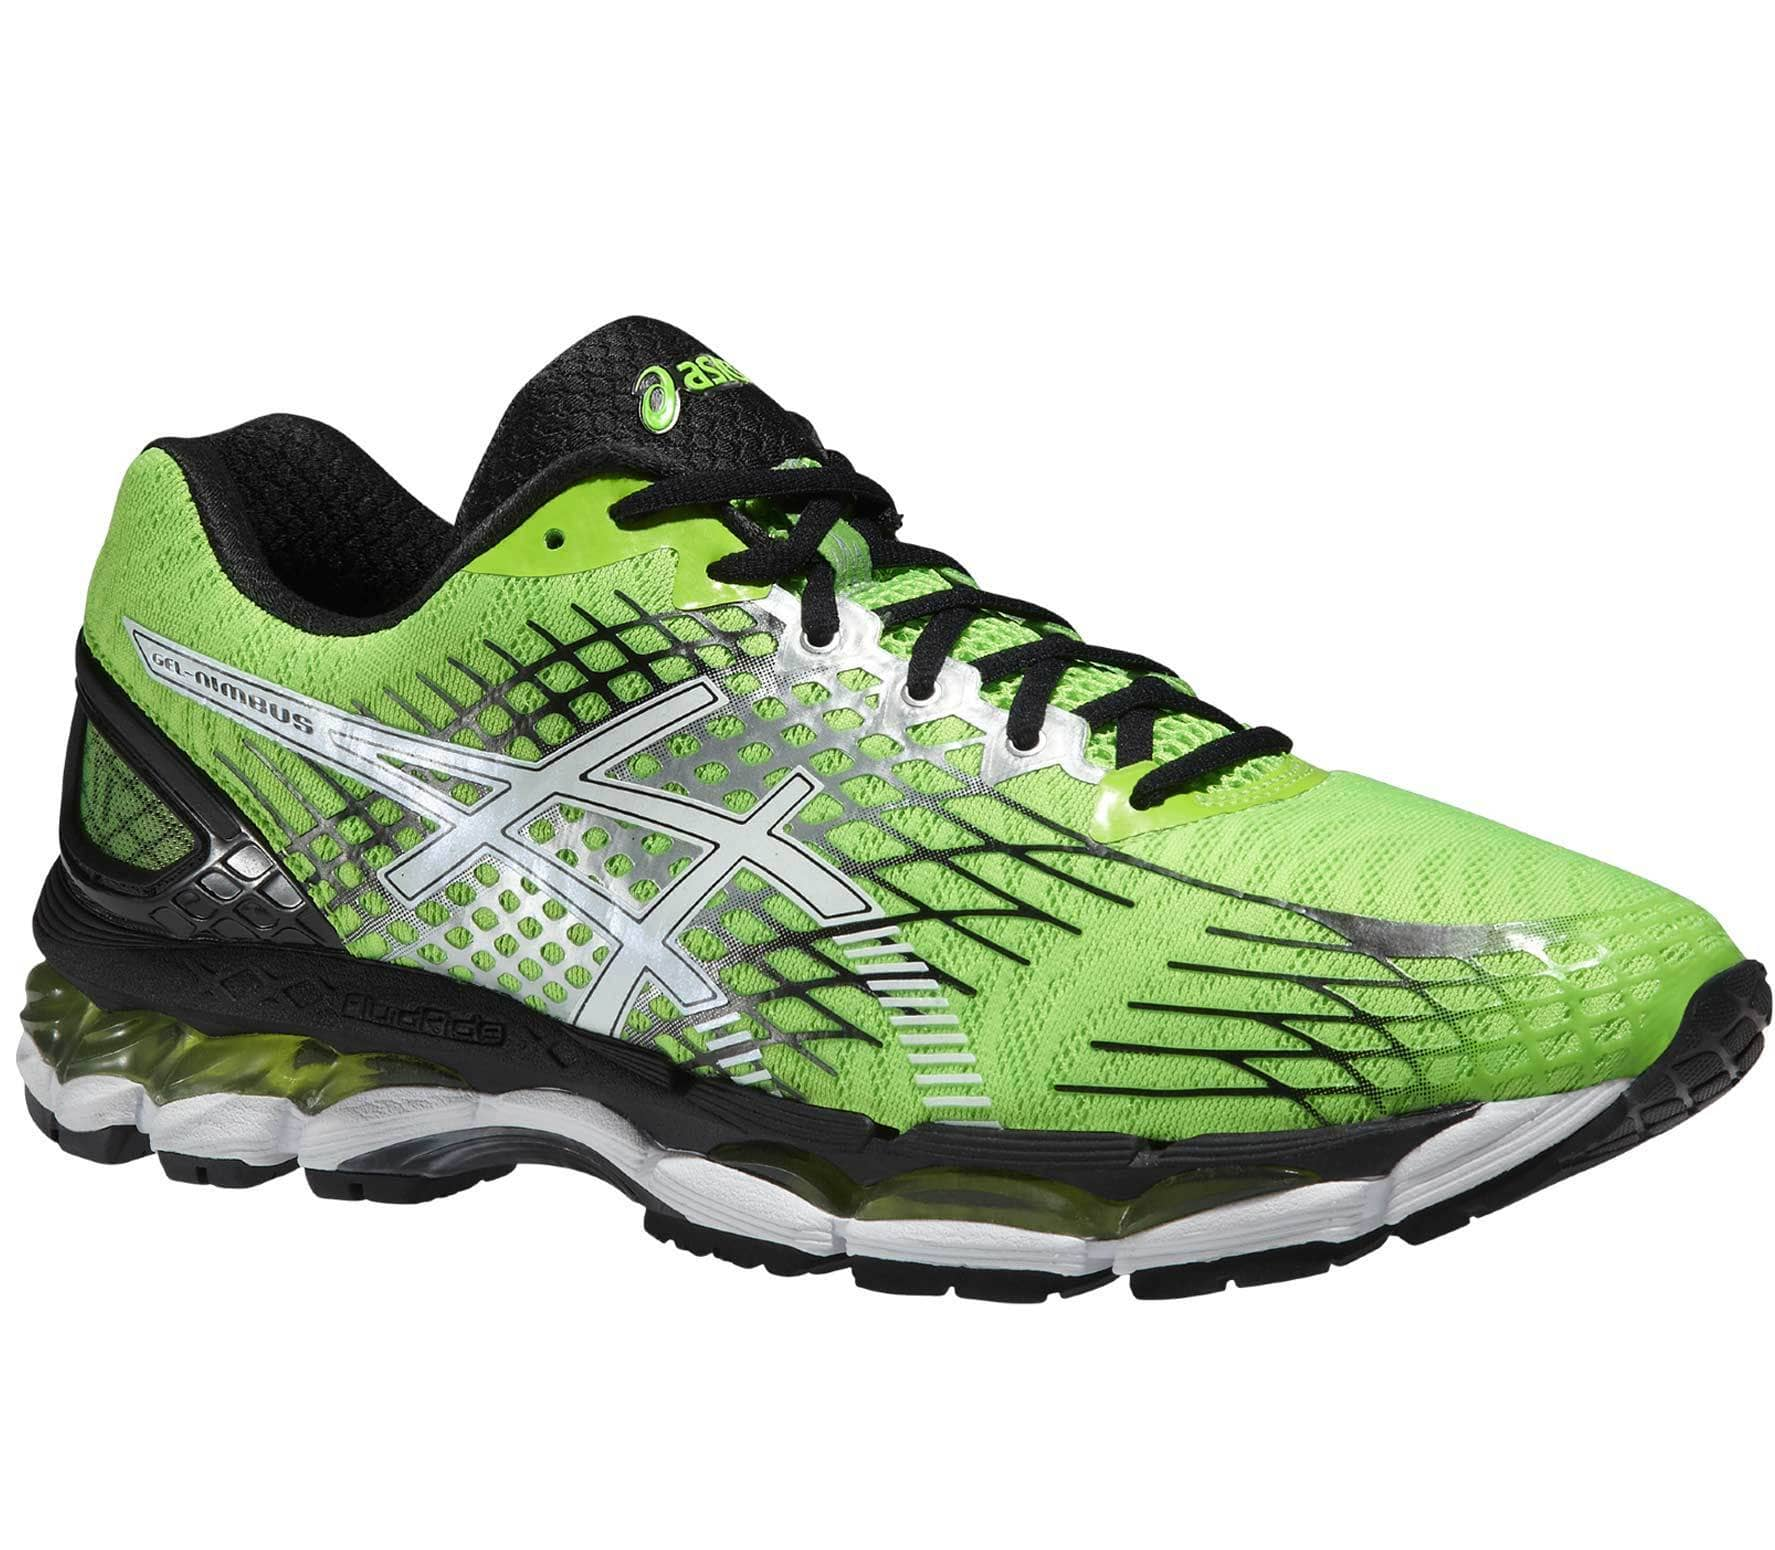 ASICS Gel-Nimbus 17 men's running shoes Herren